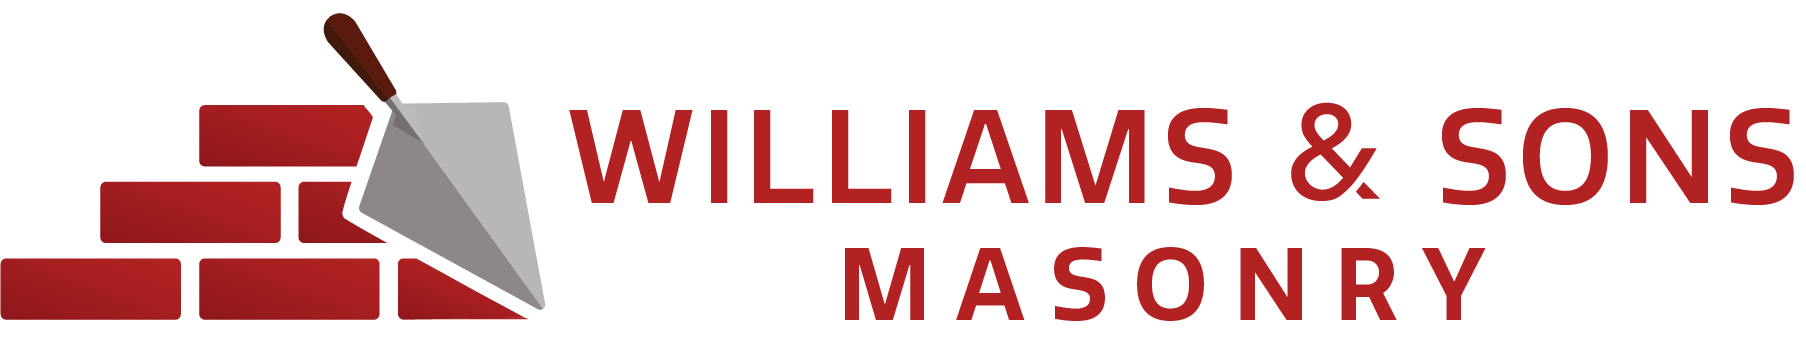 Williams & Sons Masonry logo with a brick and trowel